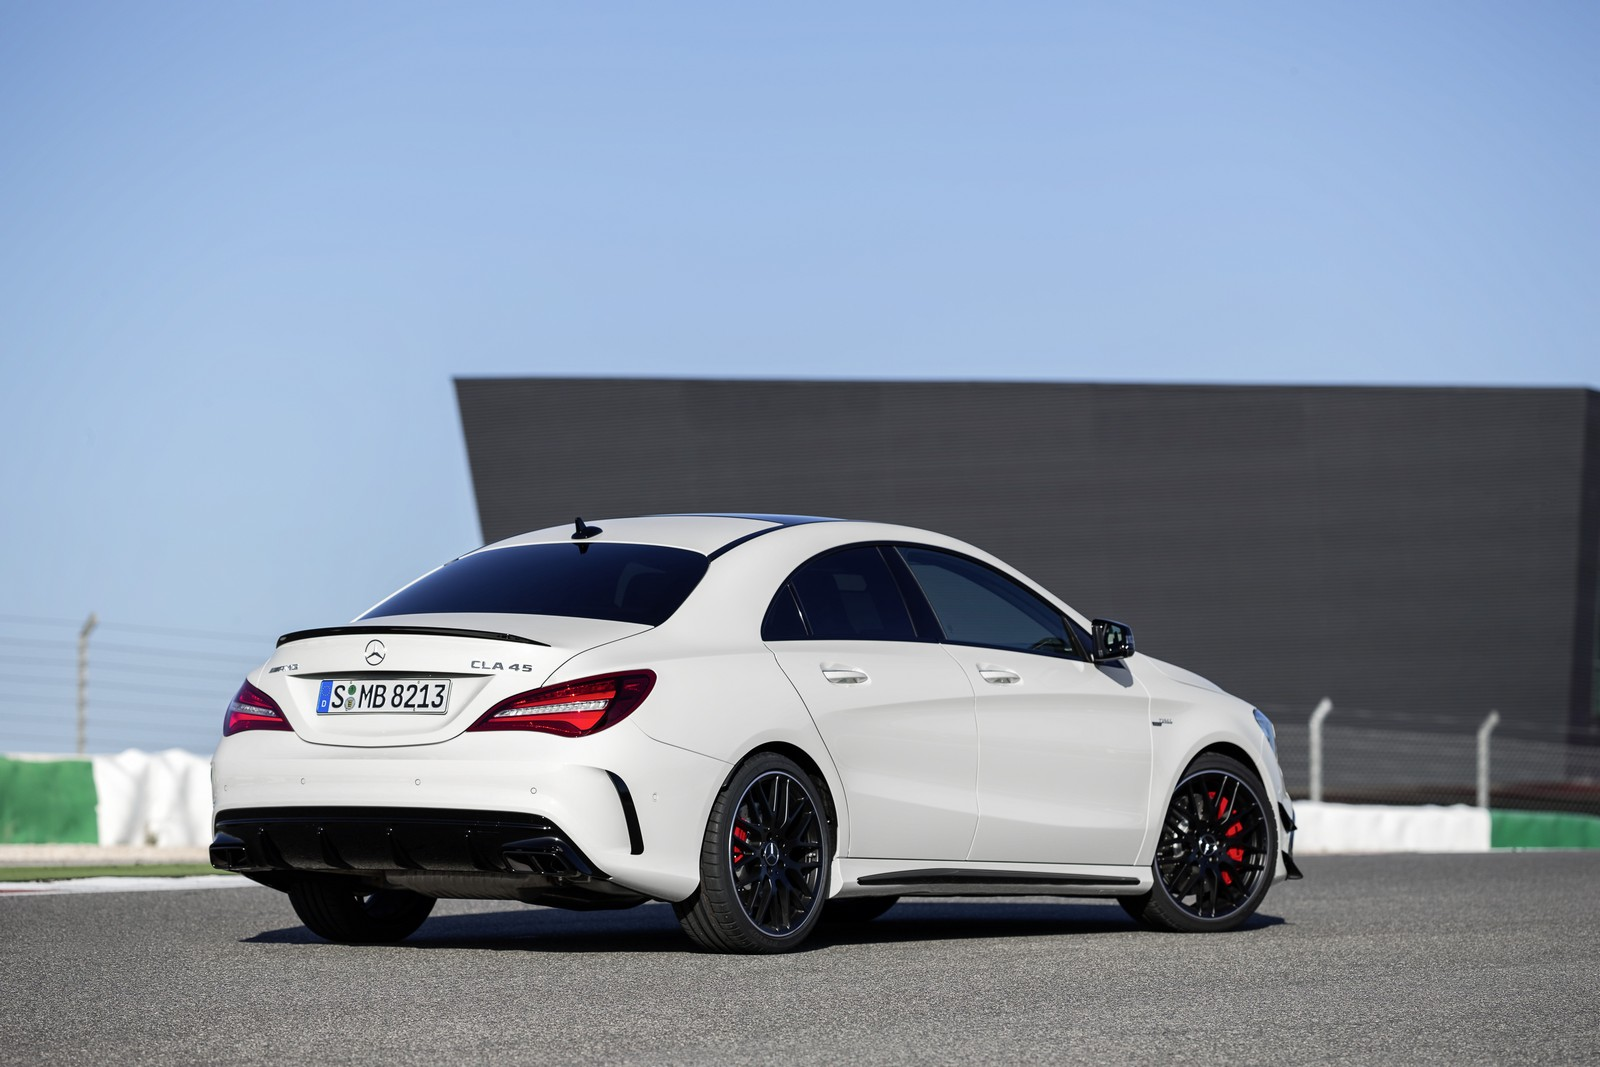 http://www.amginyears.com/wp-content/uploads/CLA-45-AMG-Facelift.jpg